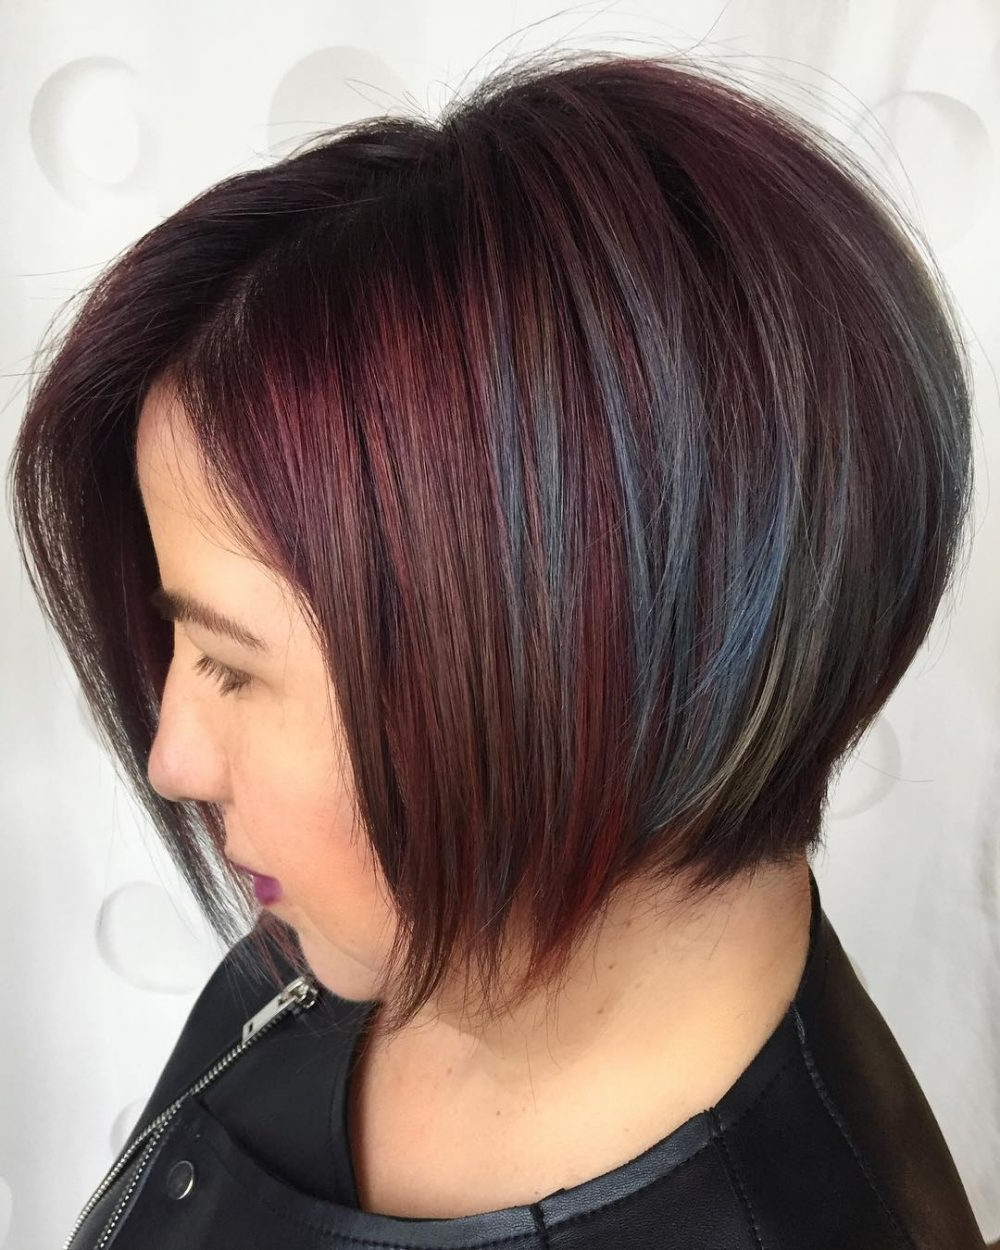 34 Greatest Short Haircuts And Hairstyles For Thick Hair For 2018 Within Short Layered Hairstyles For Thick Hair (View 2 of 20)